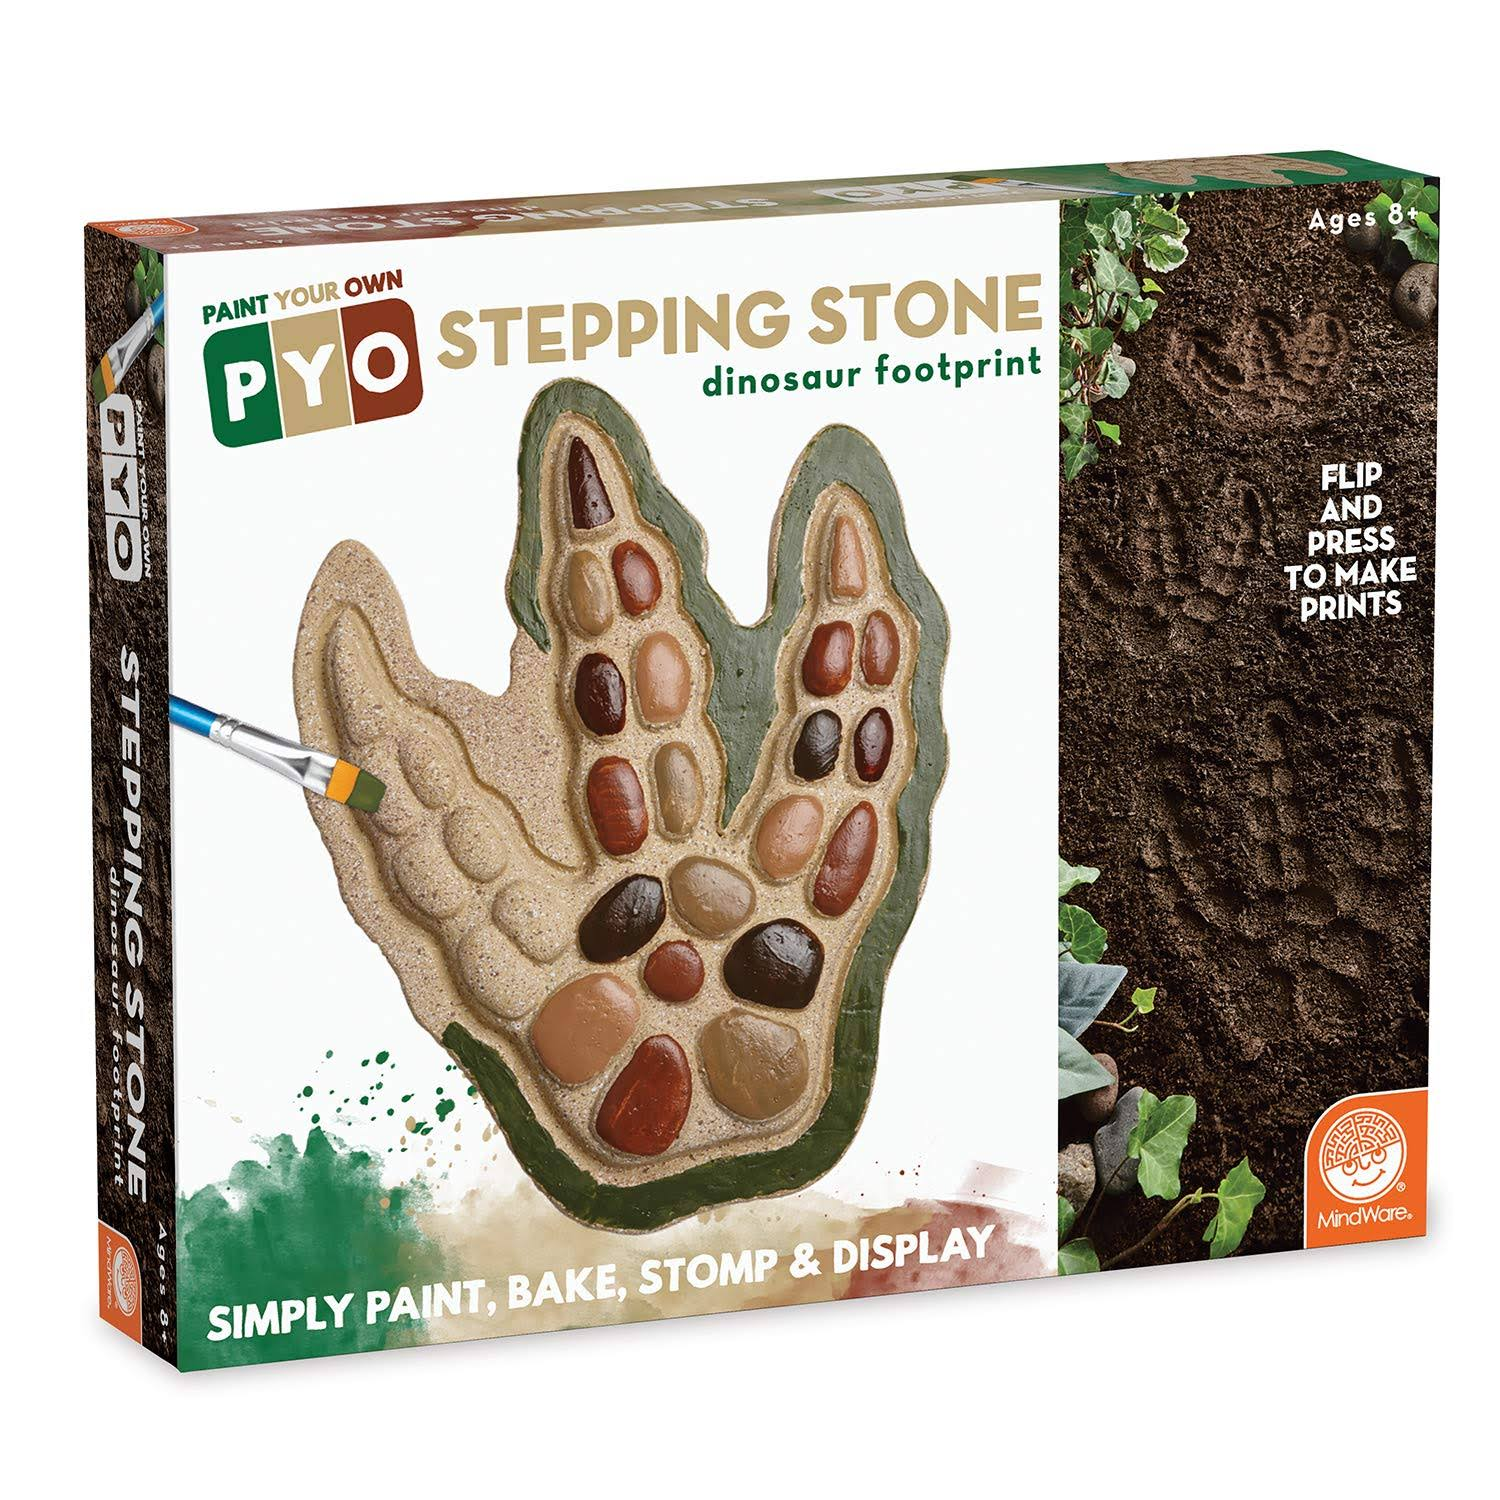 MindWare Paint Your Own Stepping Stone - Dinosaur Footprint